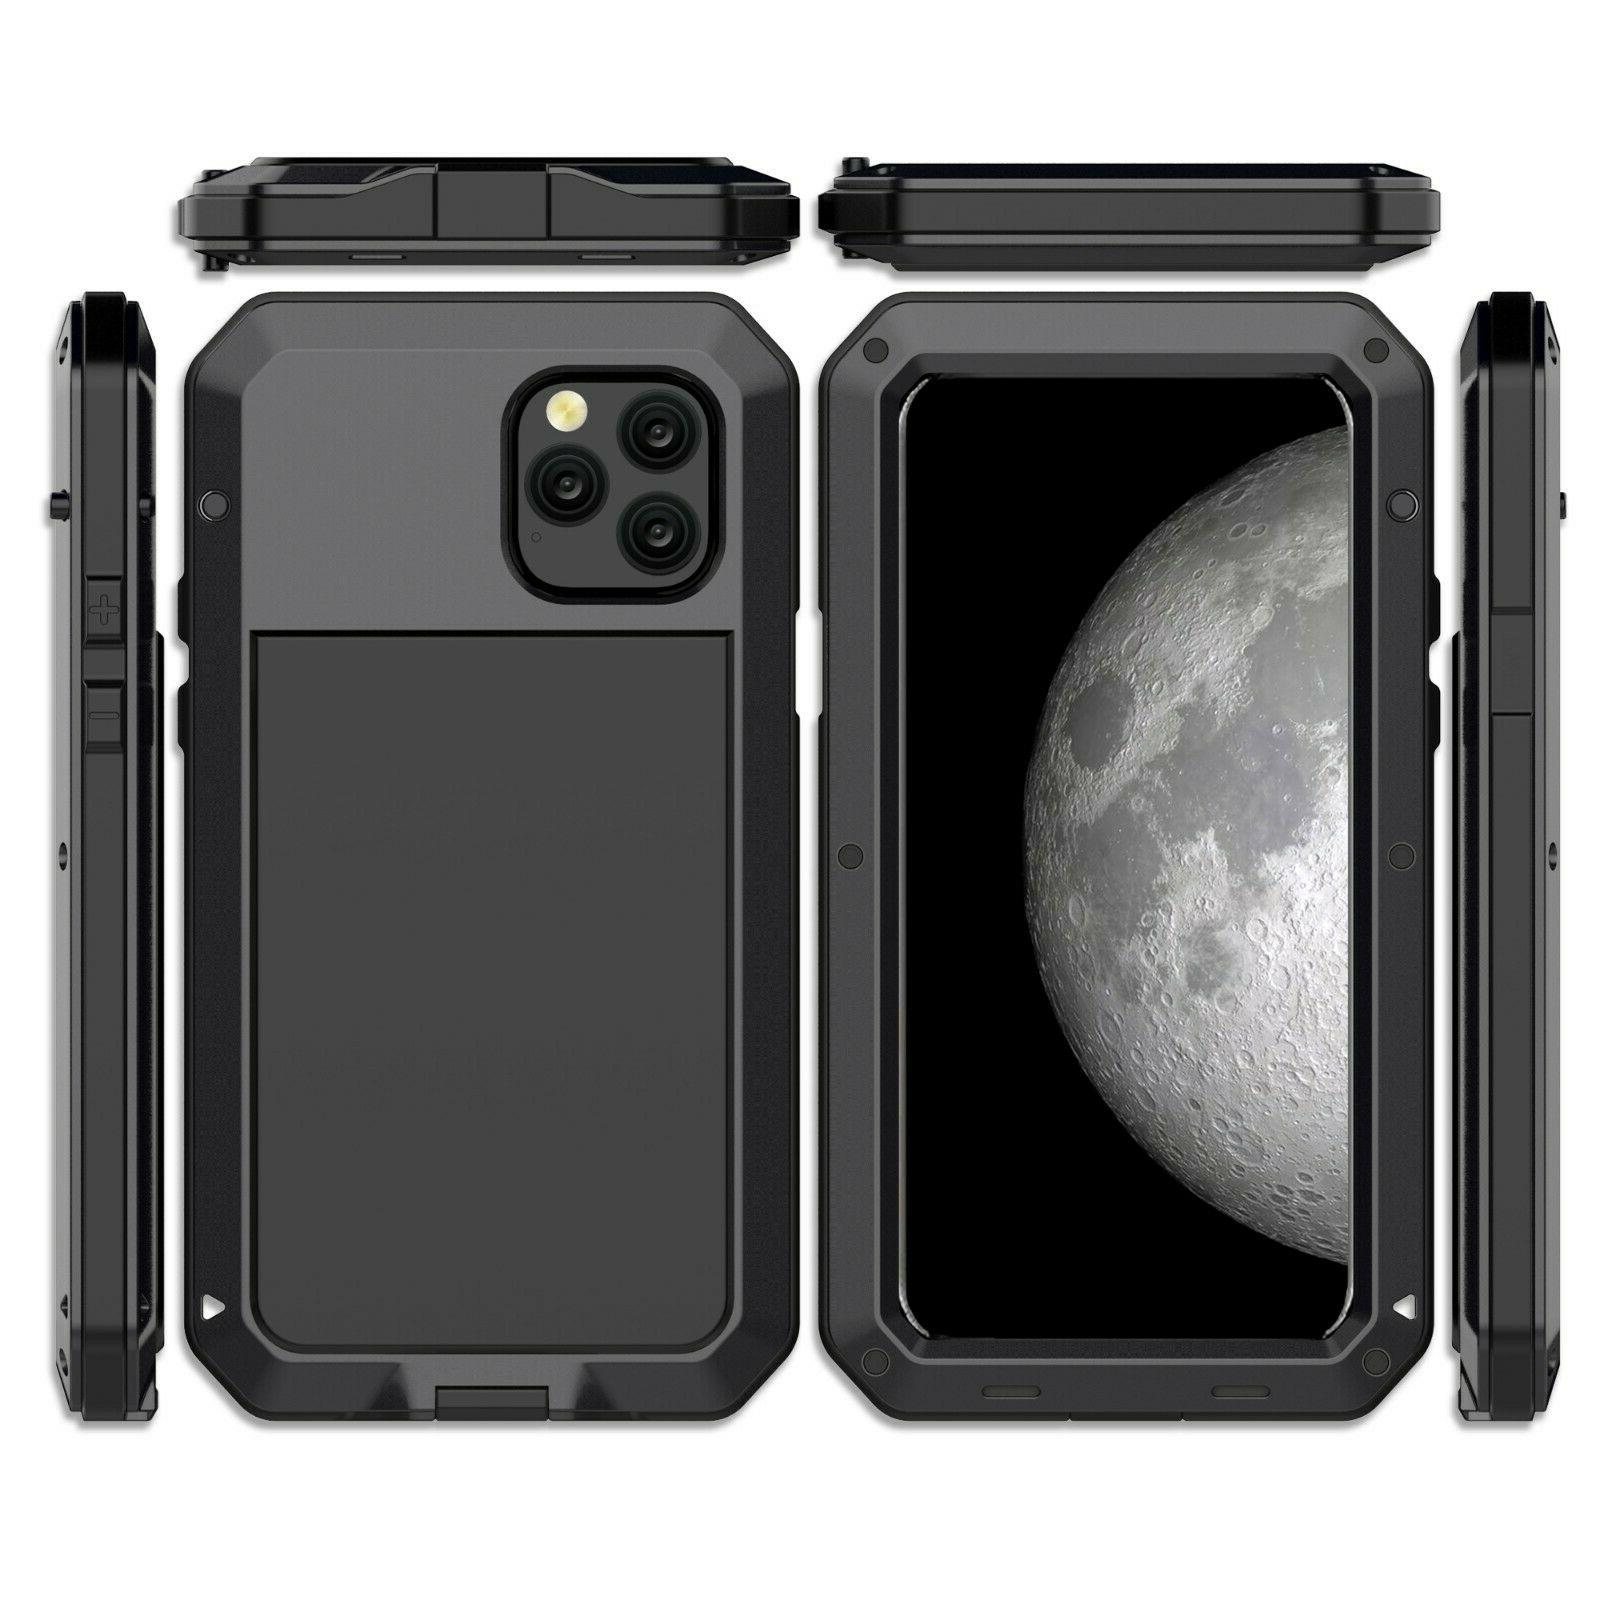 F iPhone Max 8 Plus XR Shockproof HEAVY DUTY Case